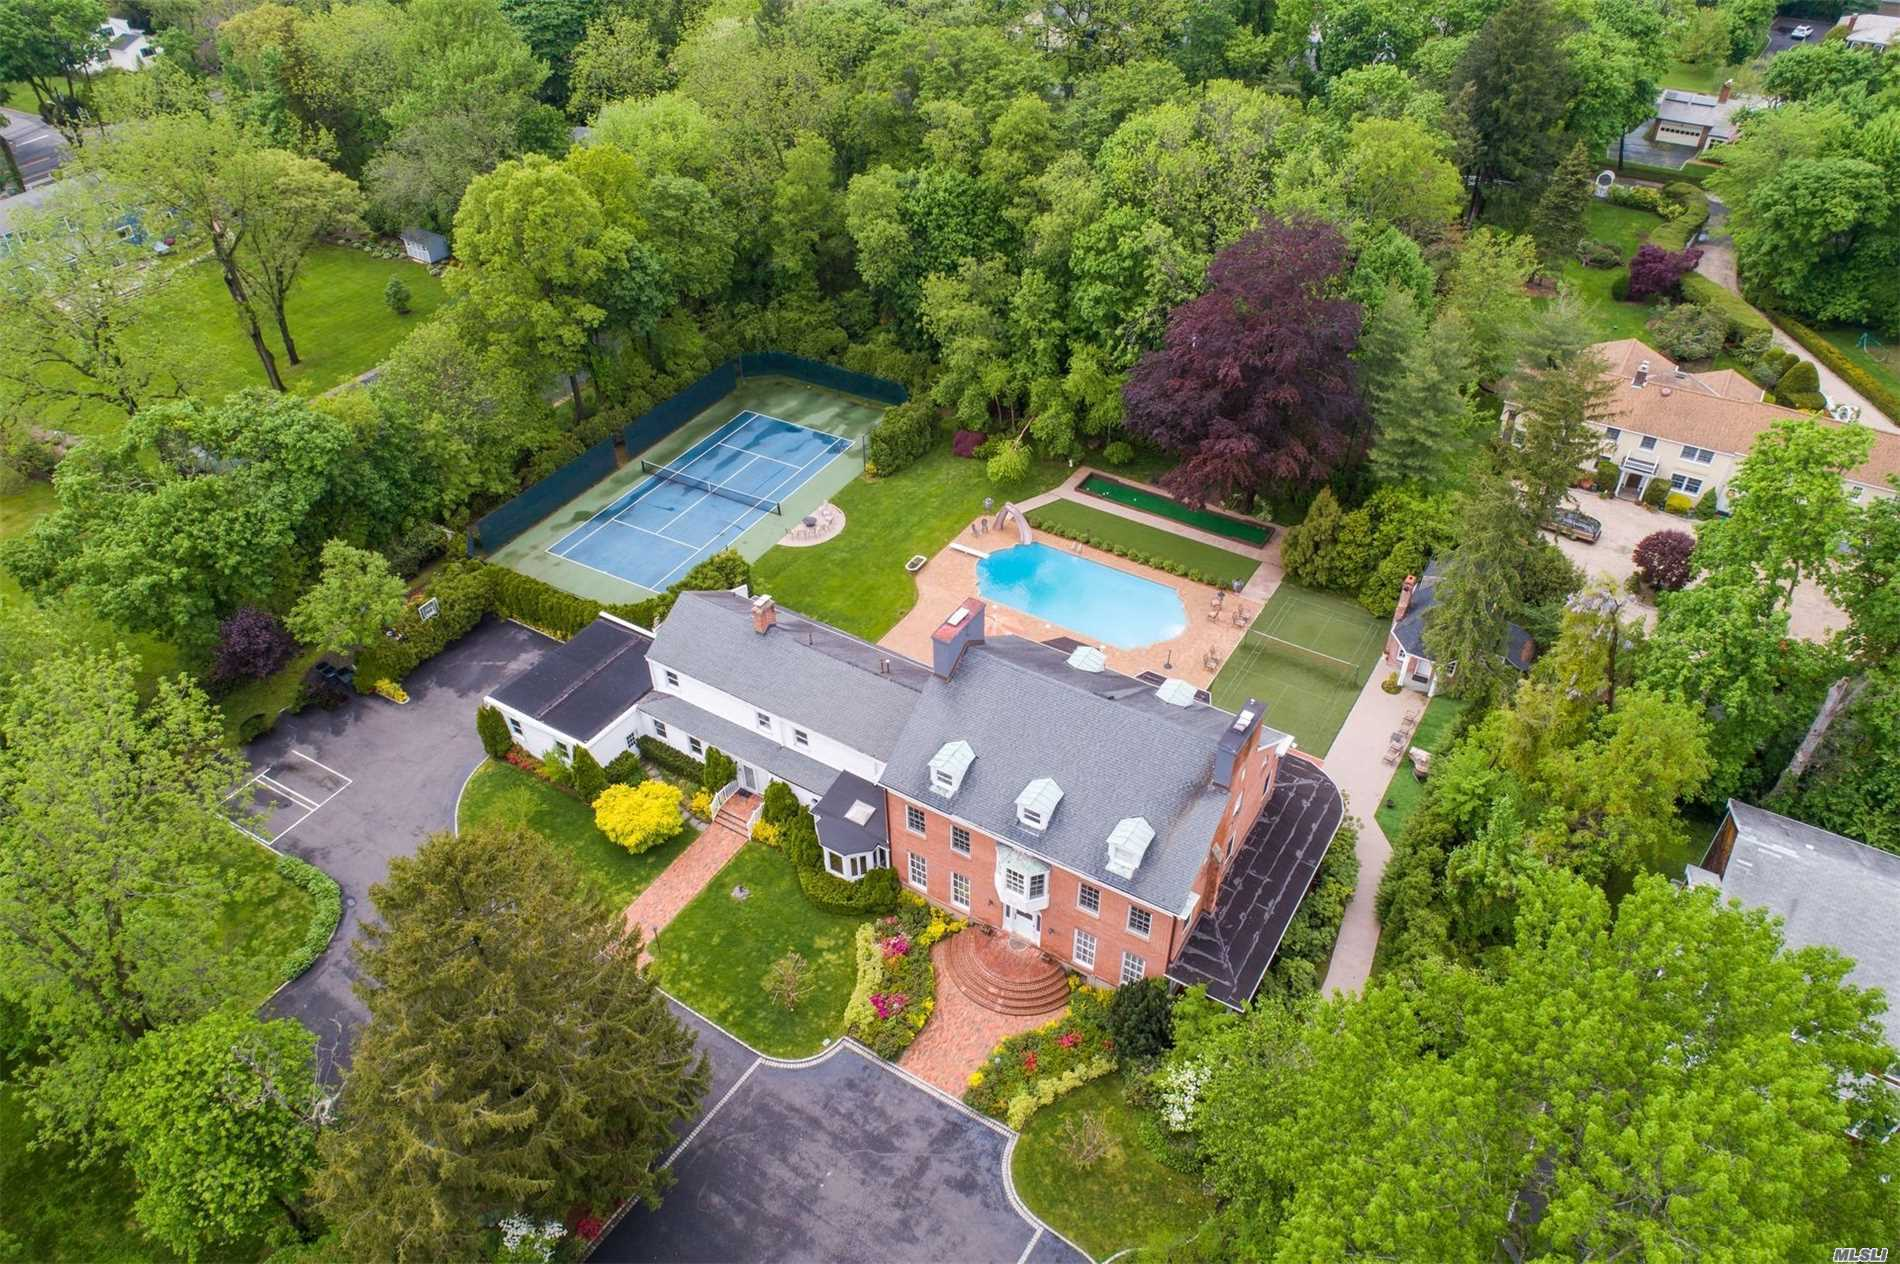 Property for sale at 501 Old Westbury Rd, Roslyn Heights,  New York 11577